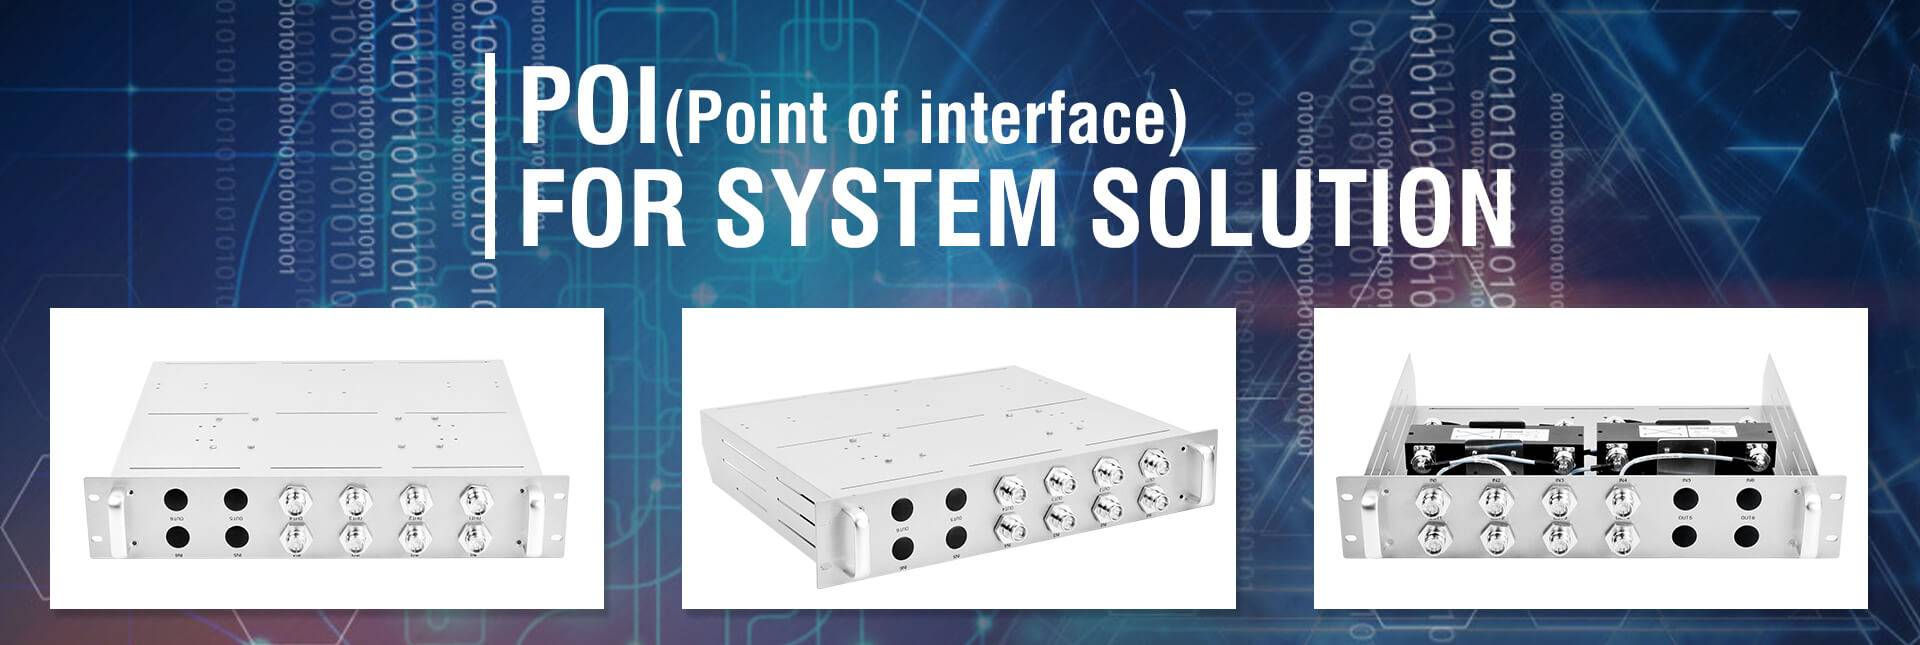 Jingxin POI for system solution